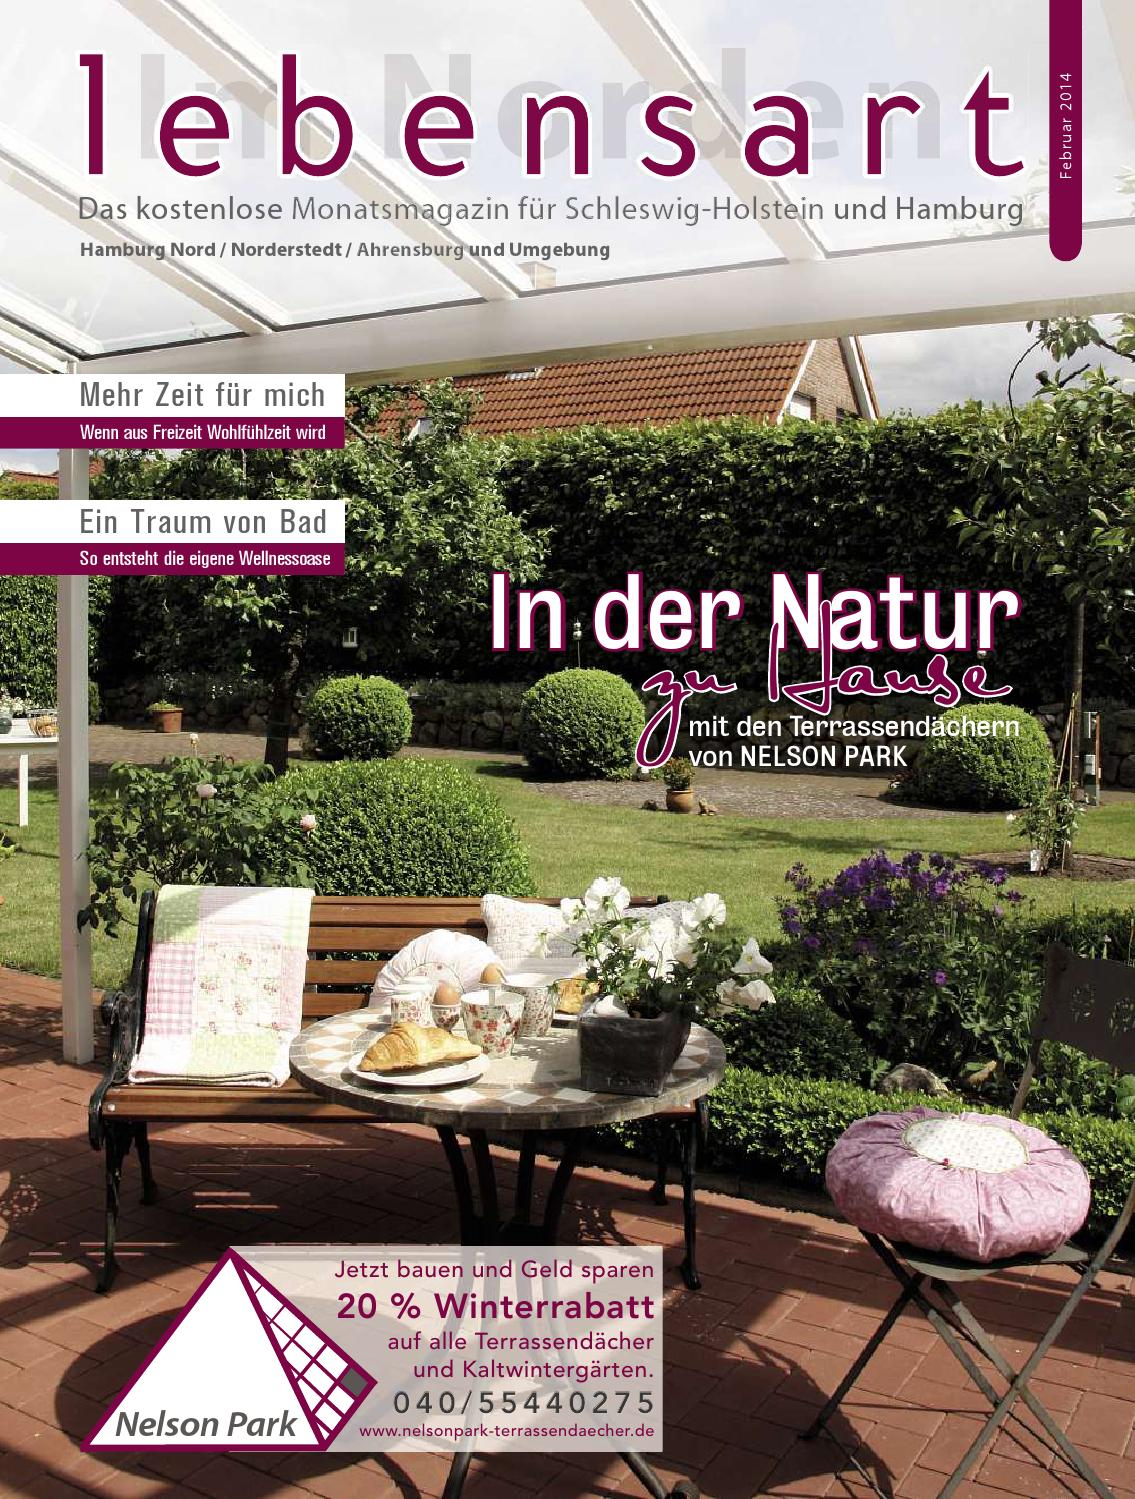 web hh n by verlagskontor schleswig holstein issuu. Black Bedroom Furniture Sets. Home Design Ideas